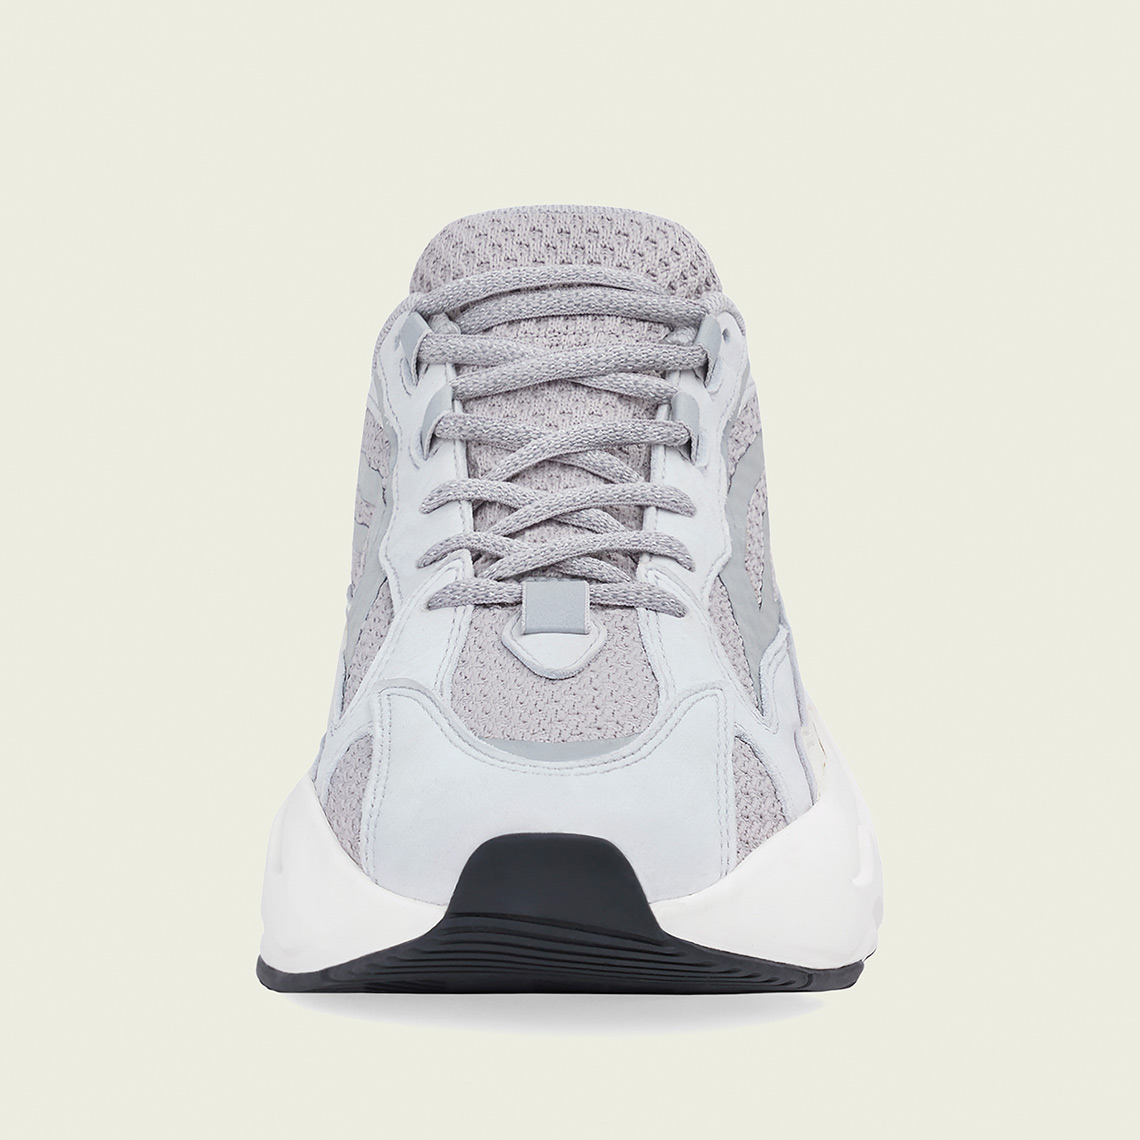 adidas Yeezy Boost 700 v2 Static Store